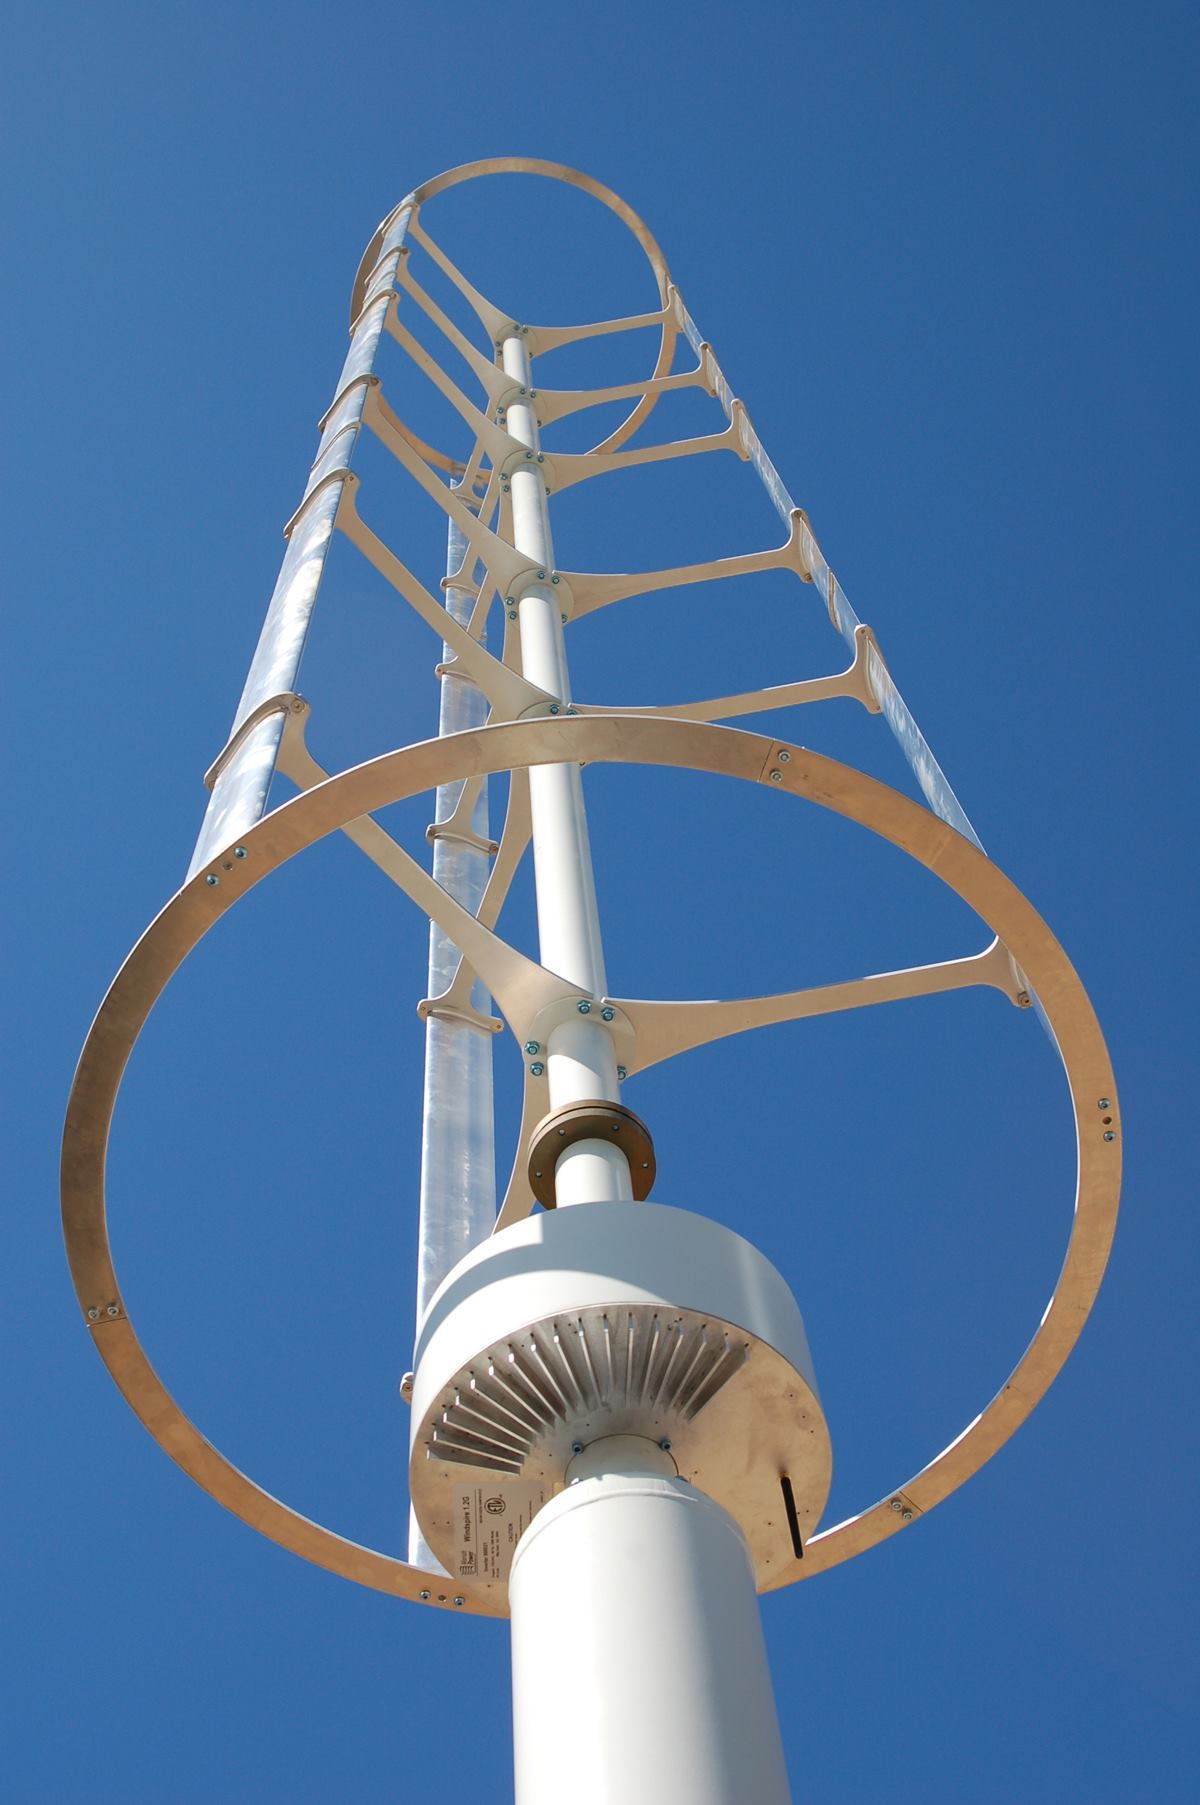 Residential Wind Turbine From Windspire Ecobuilding Pulse